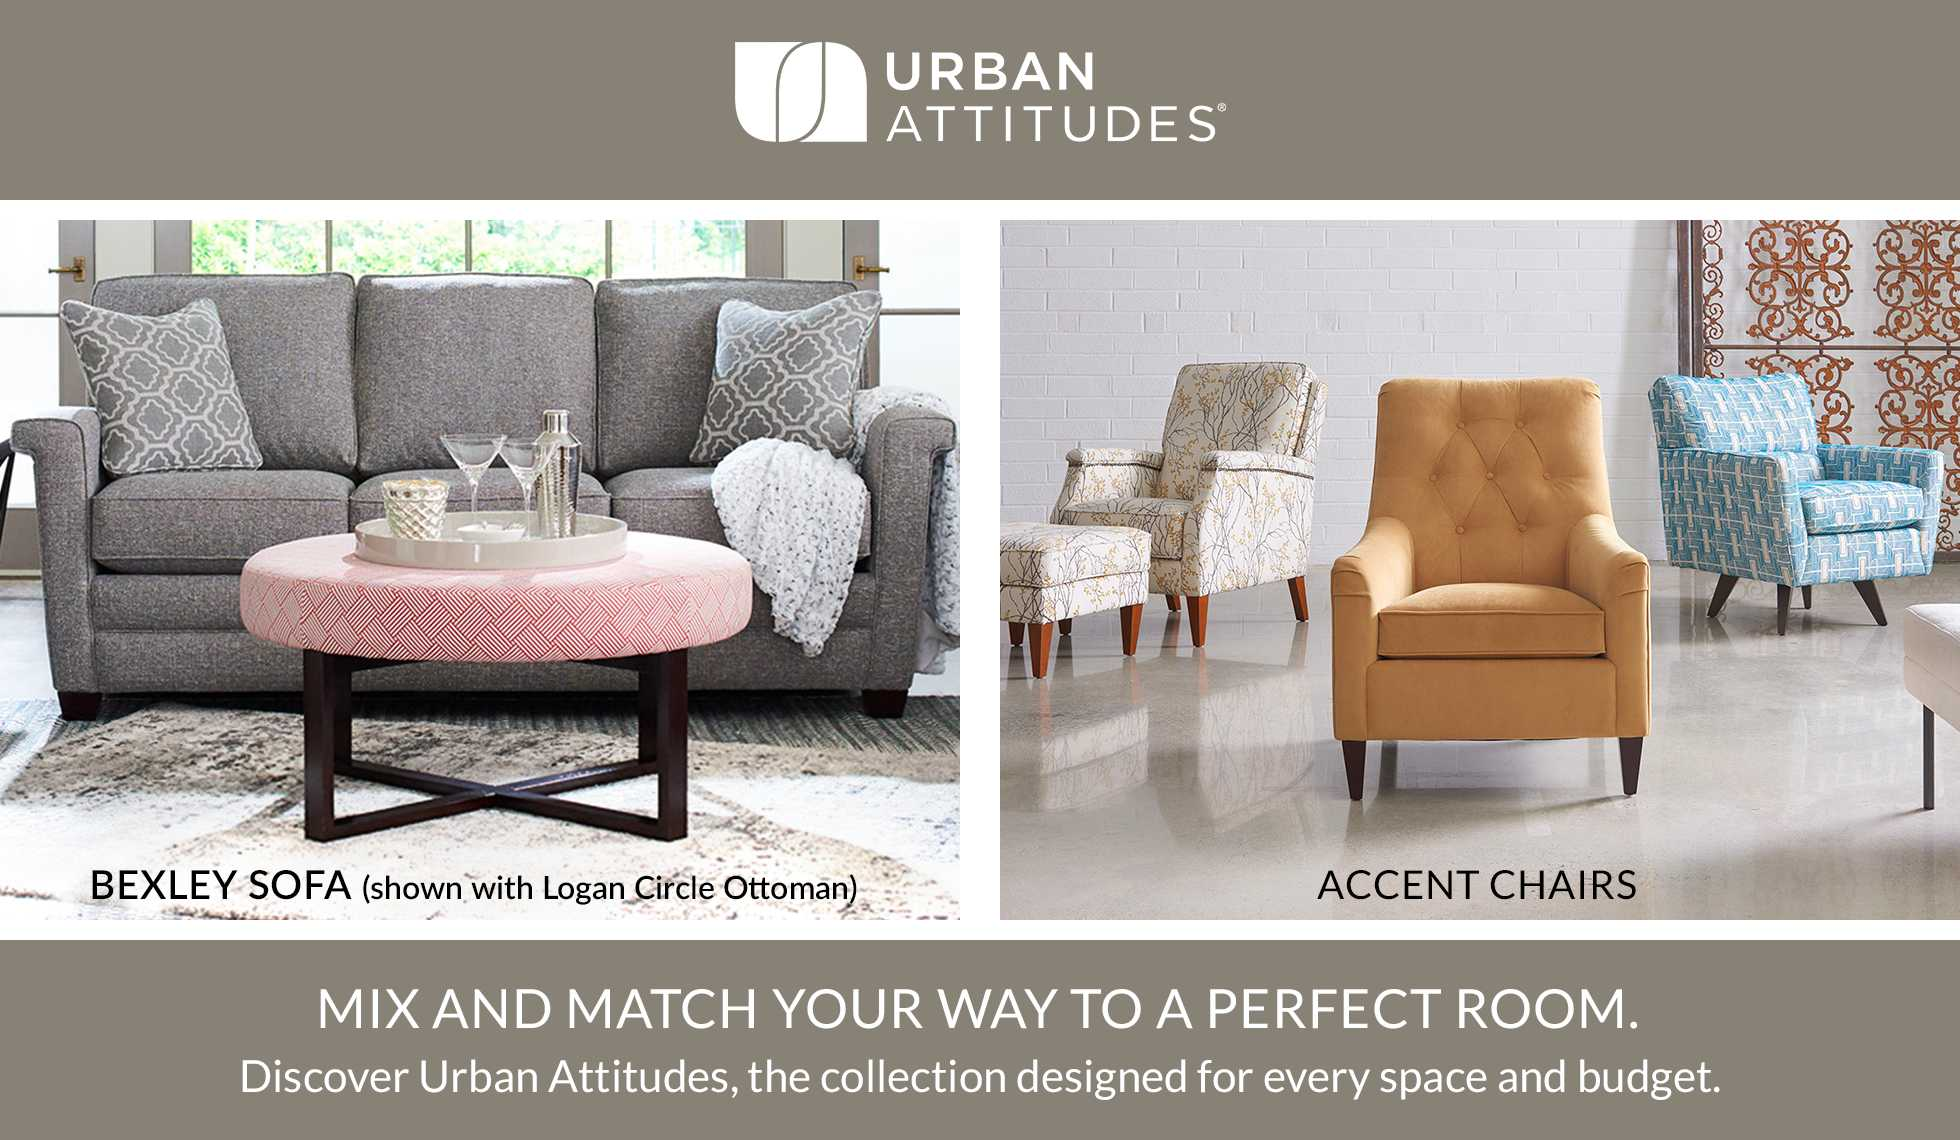 Urban Attitudes - Mix and match your way to a perfect room.